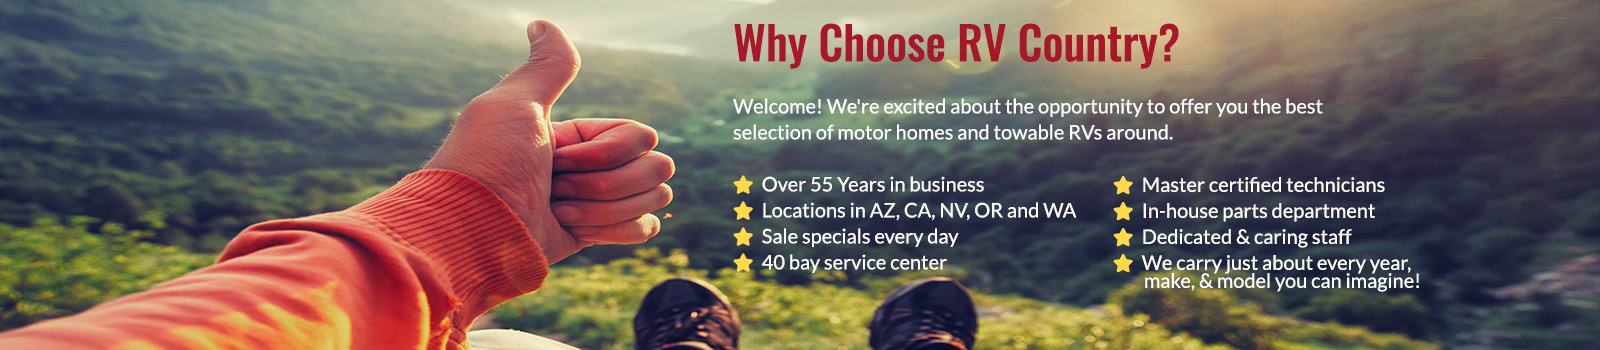 Why Choose RV Country?